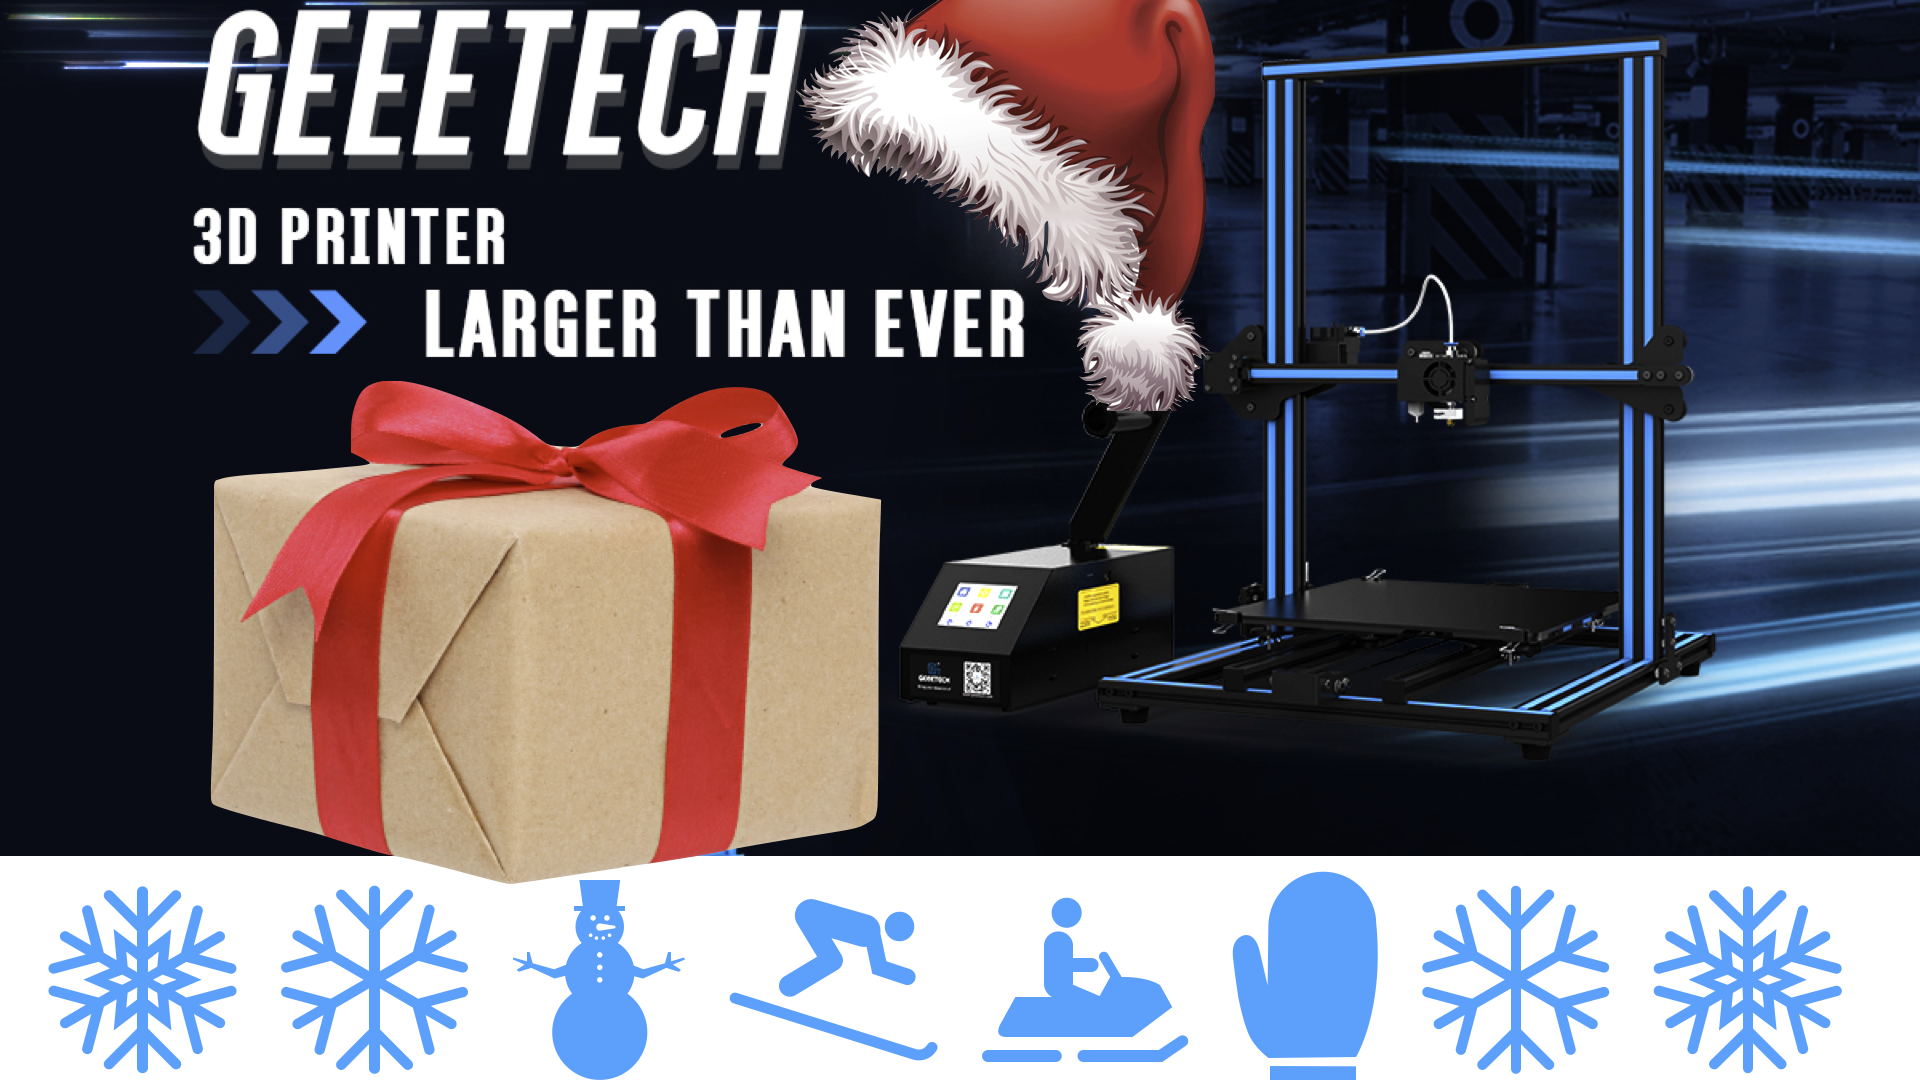 Best Geeetech 3D Printers and 3D Printer Accessories to Gift This Christmas 2017